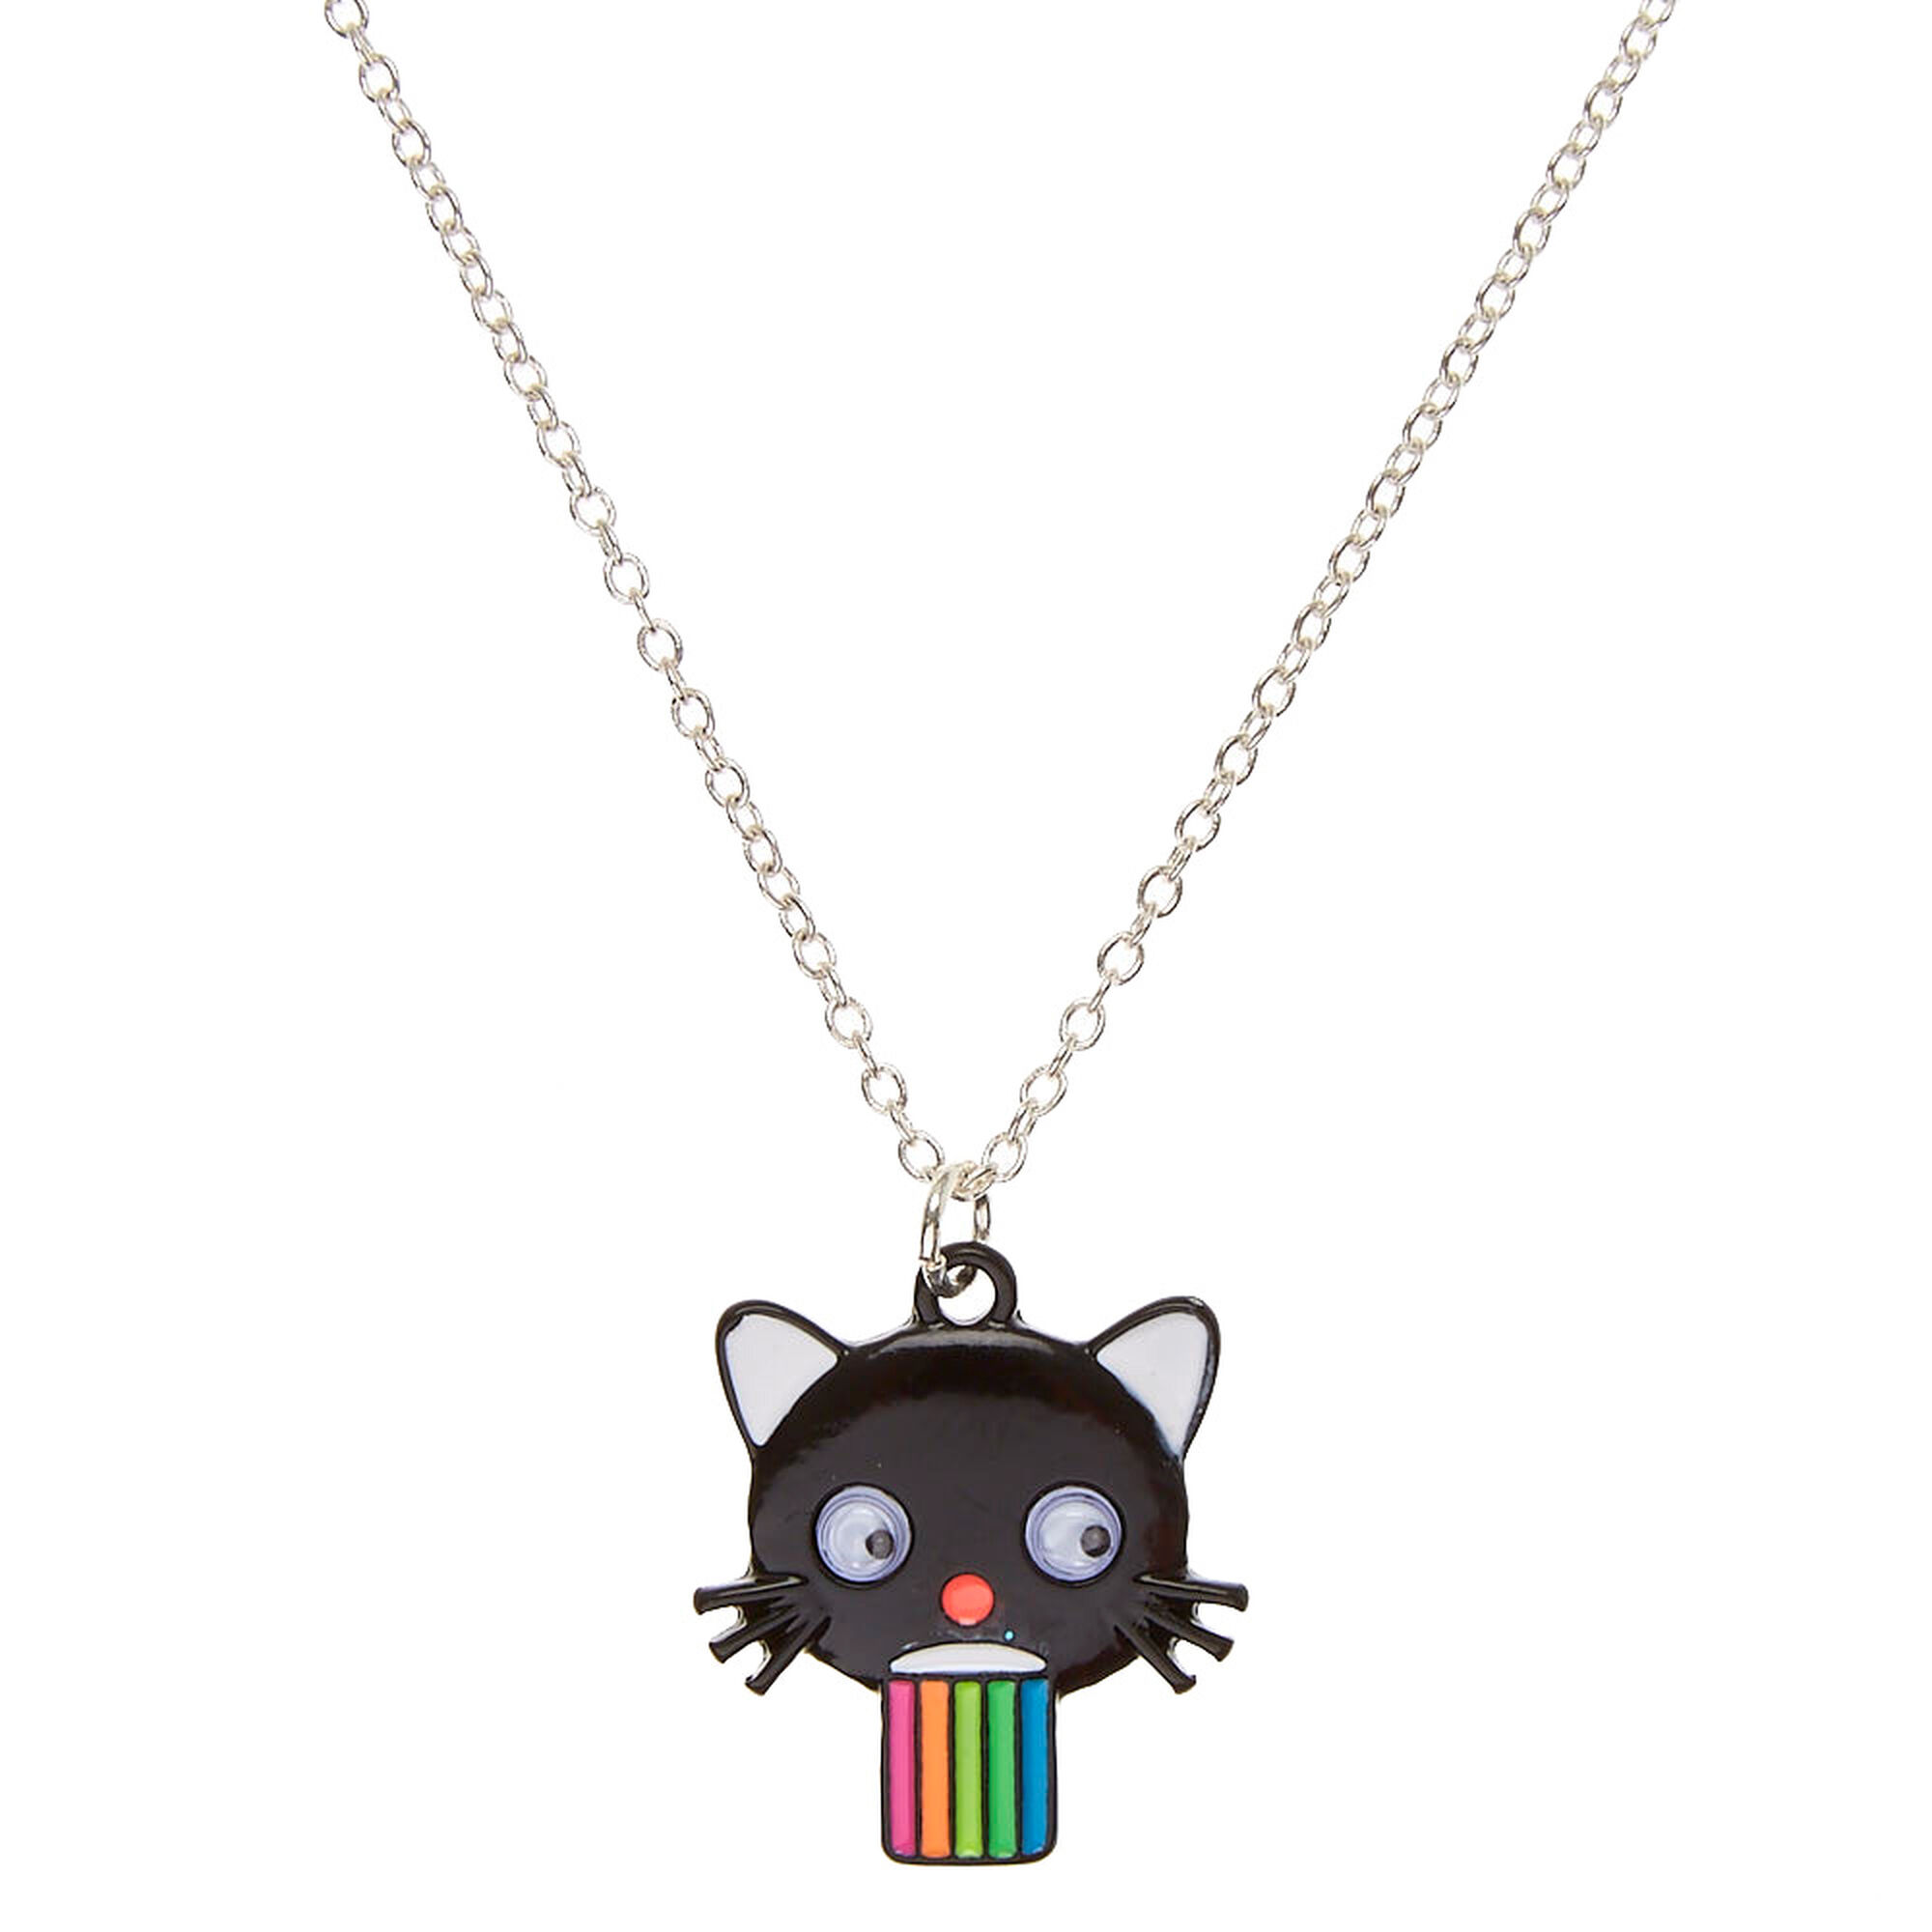 black product tw w silver sterling jsp pendant necklace op sharpen t wid white prd cat hei diamond ct